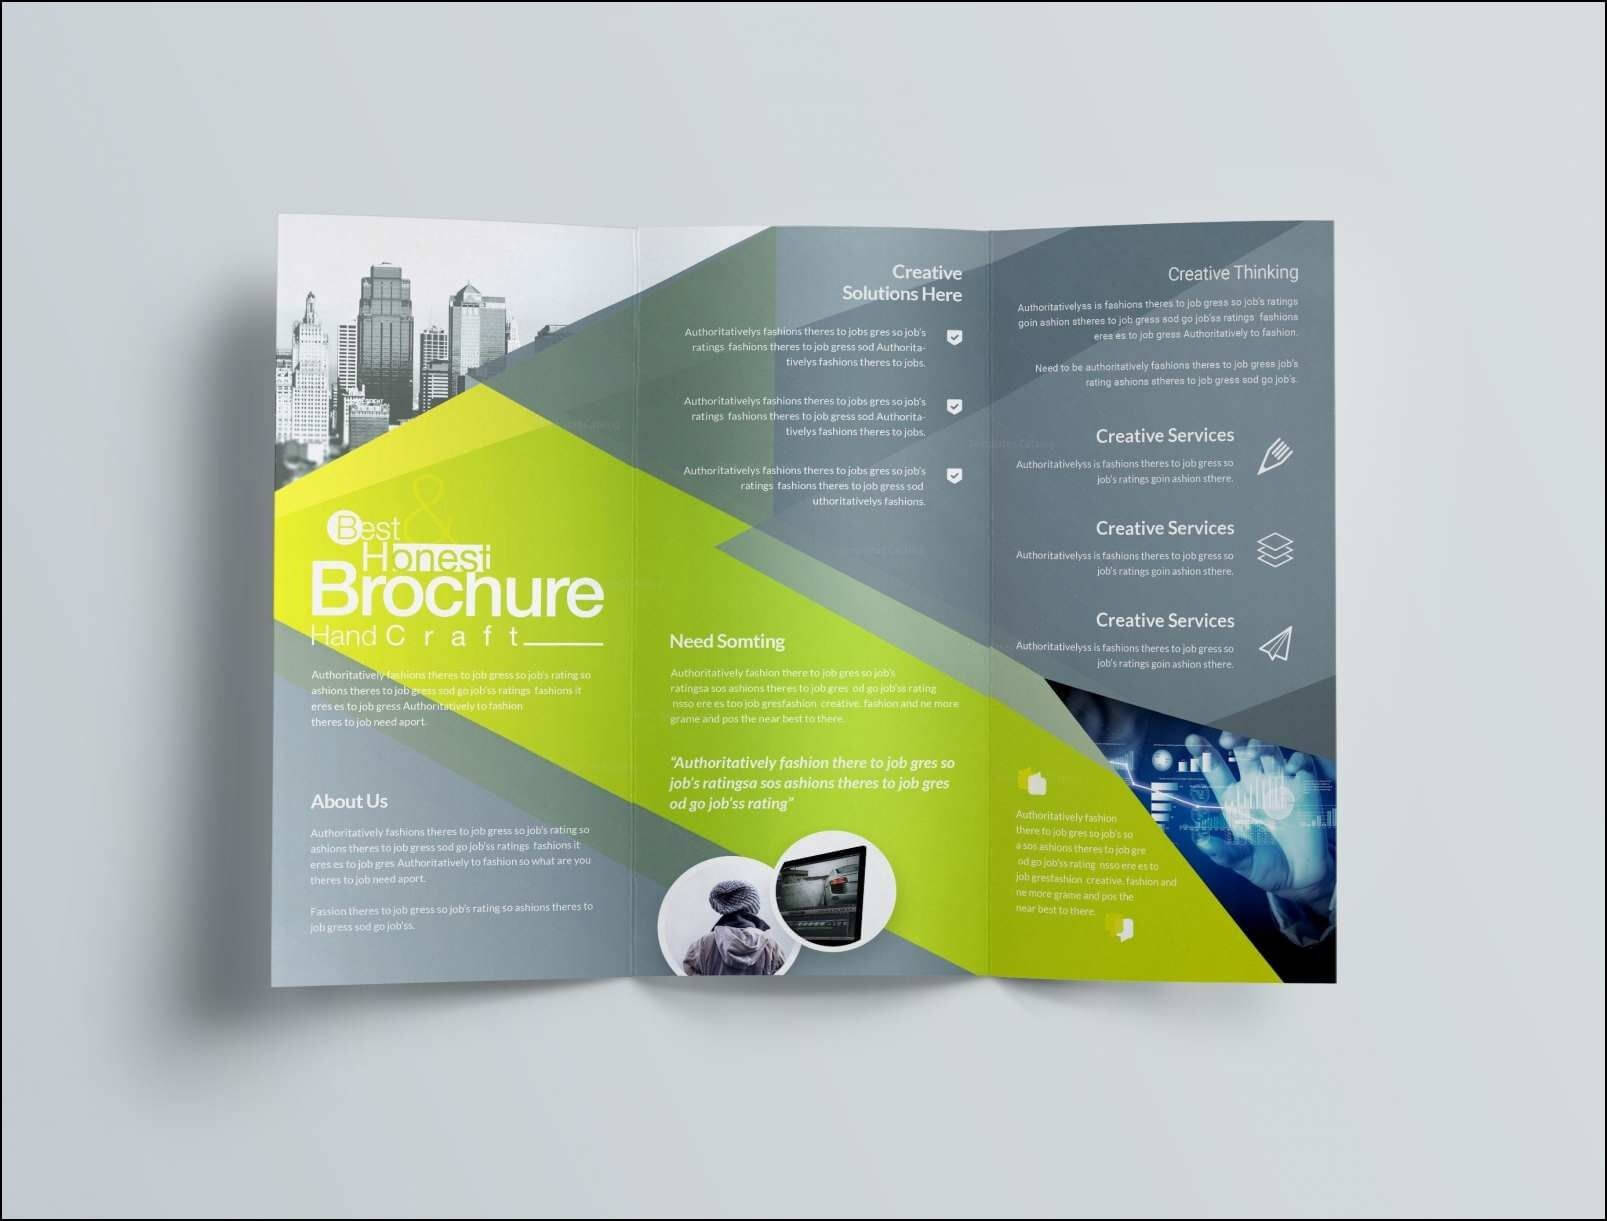 024 Template Ideas Brochure Templates Free Download For In Free Brochure Templates For Word 2010